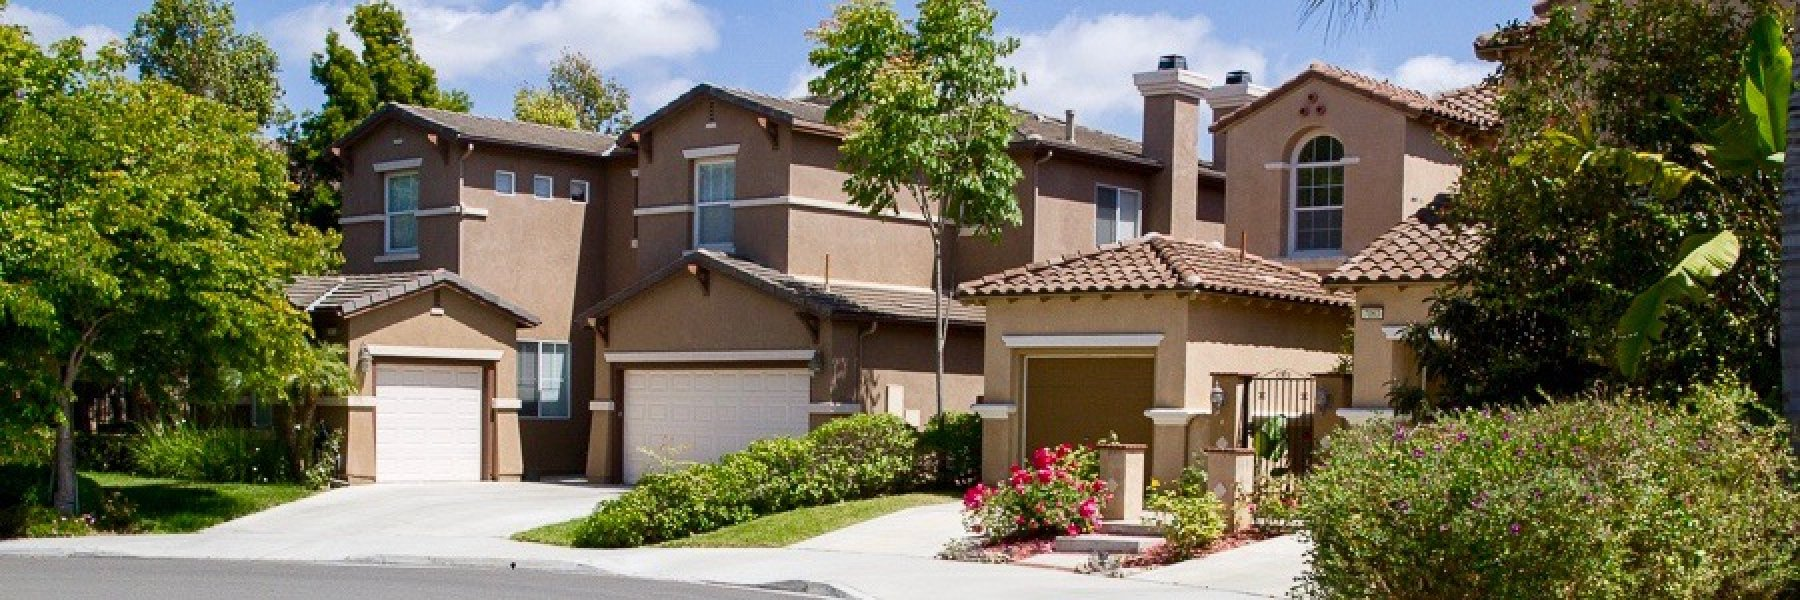 Montellano is a community of homes in San Diego California